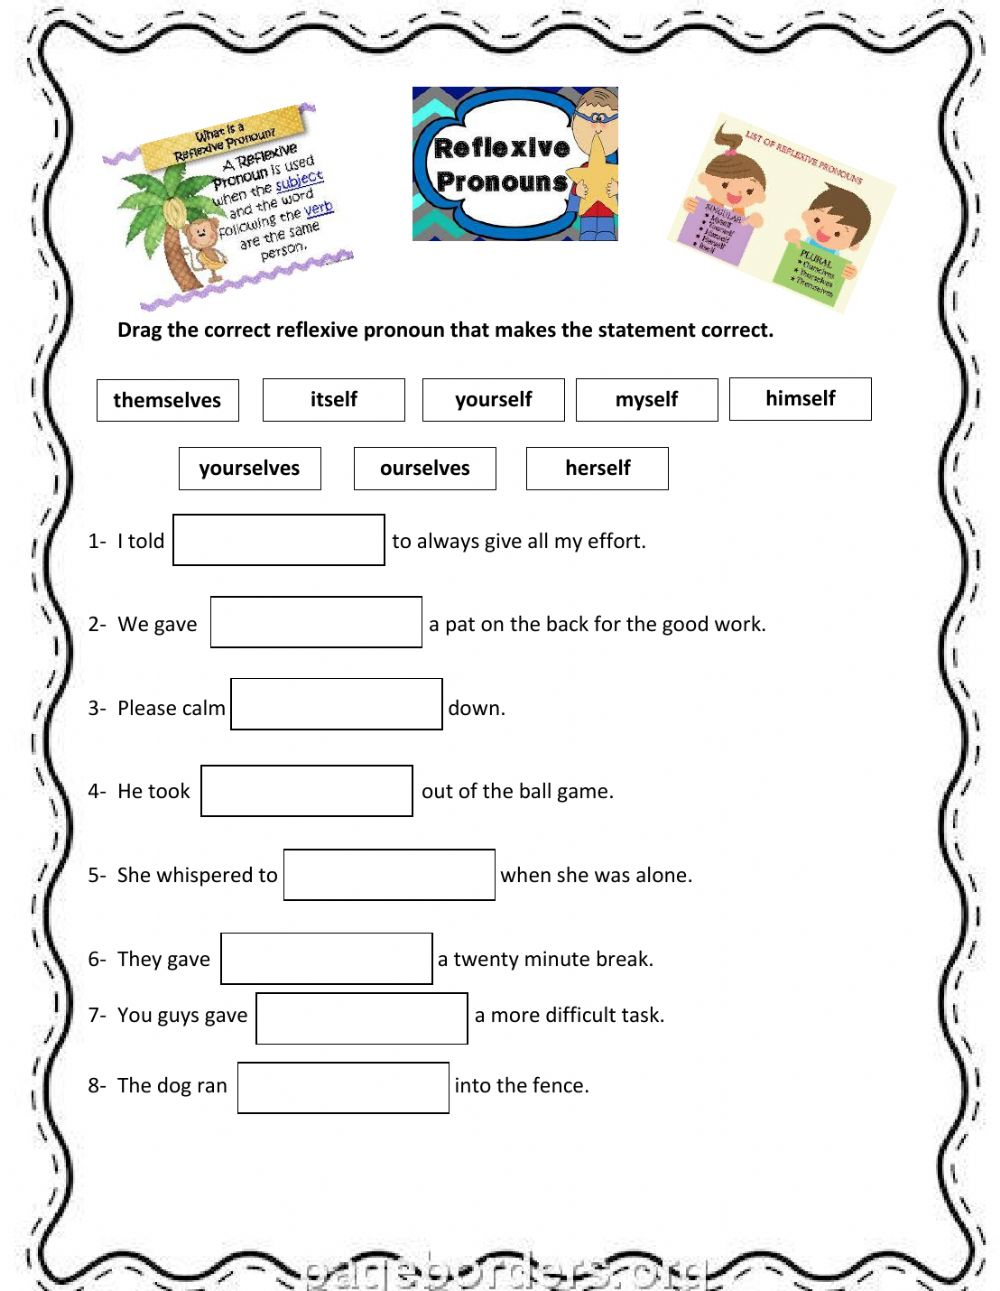 hight resolution of Reflexive Pronouns zsciencez worksheet